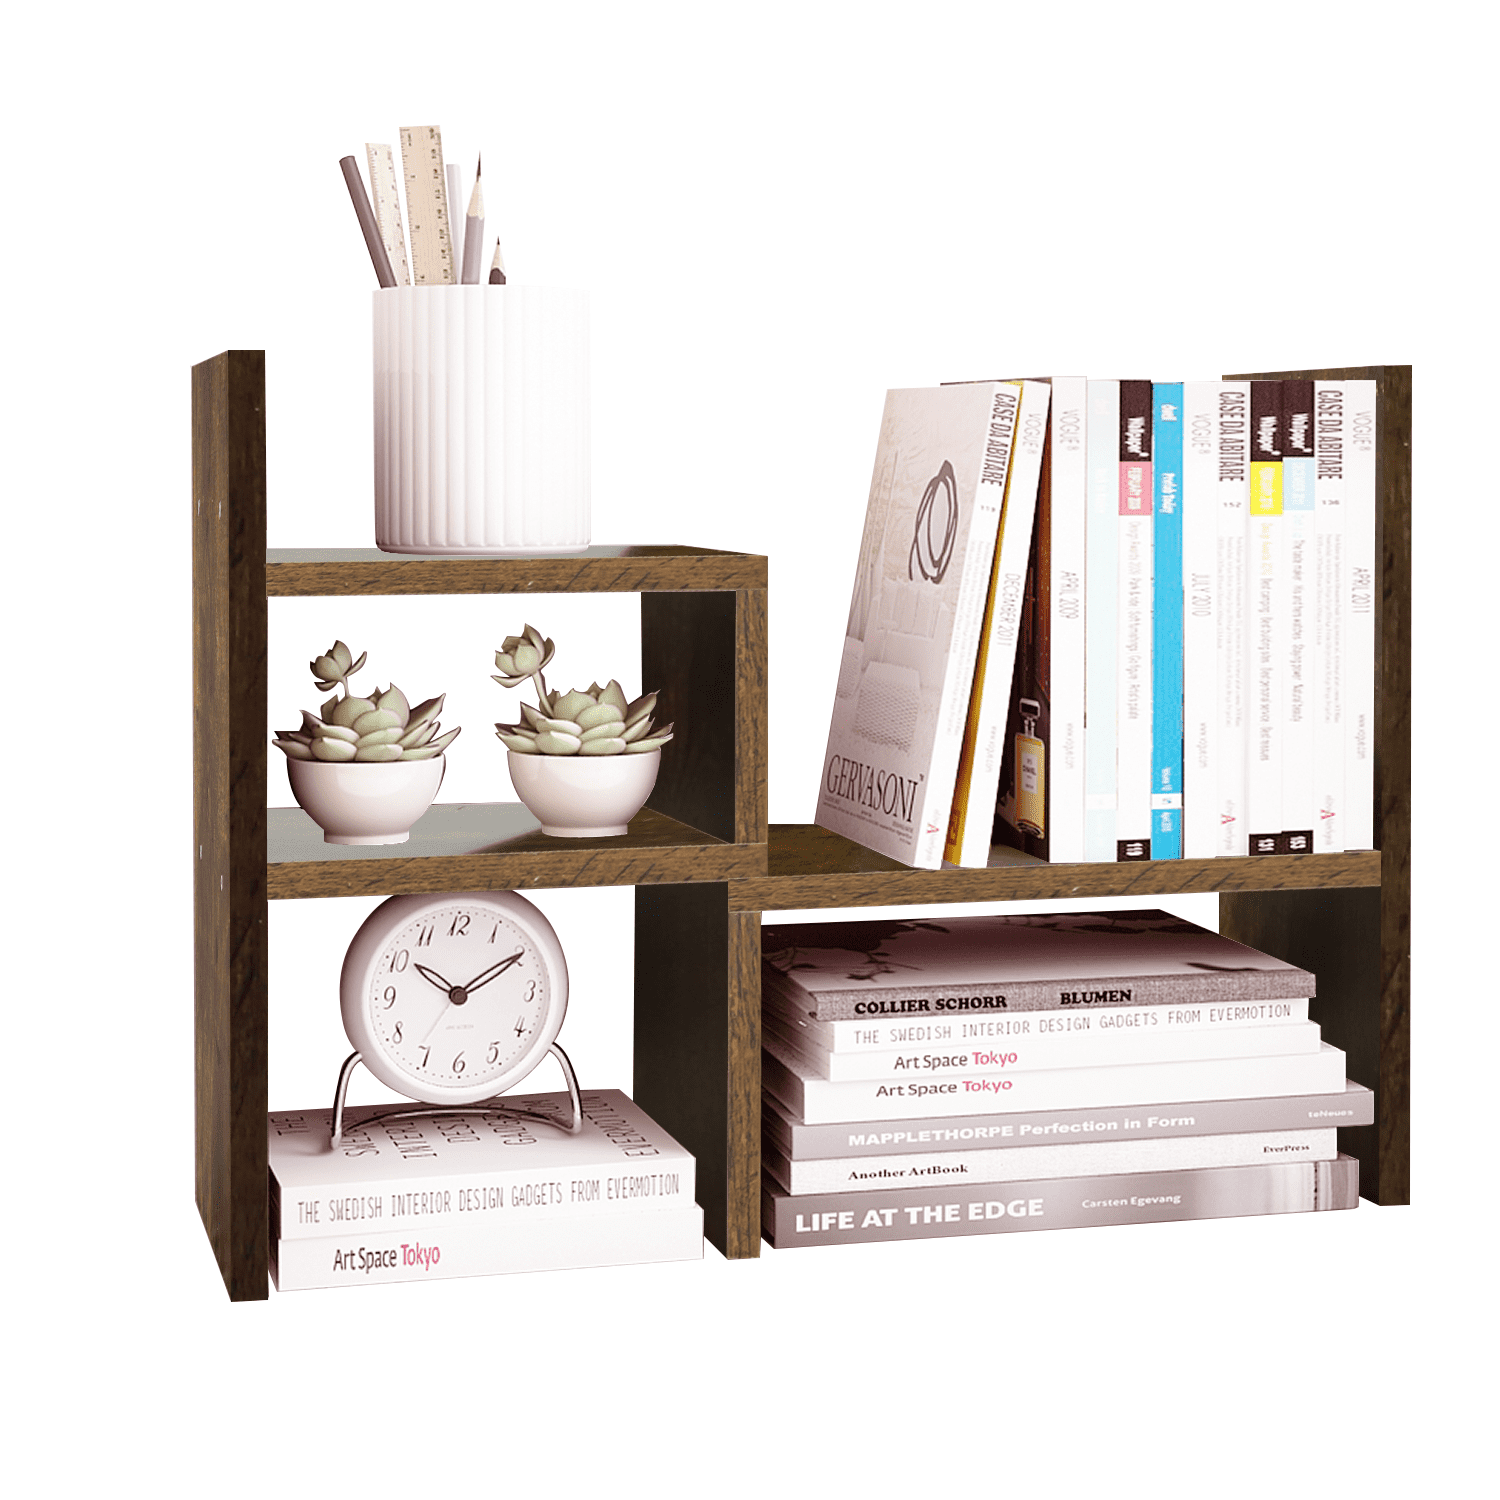 THY COLLECTIBLES Bamboo Desk Organizer with Extendable Storage Multi-Function Stationary Organizer For Office and Home Expandable Desk Tidy Bamboo Bookshelf